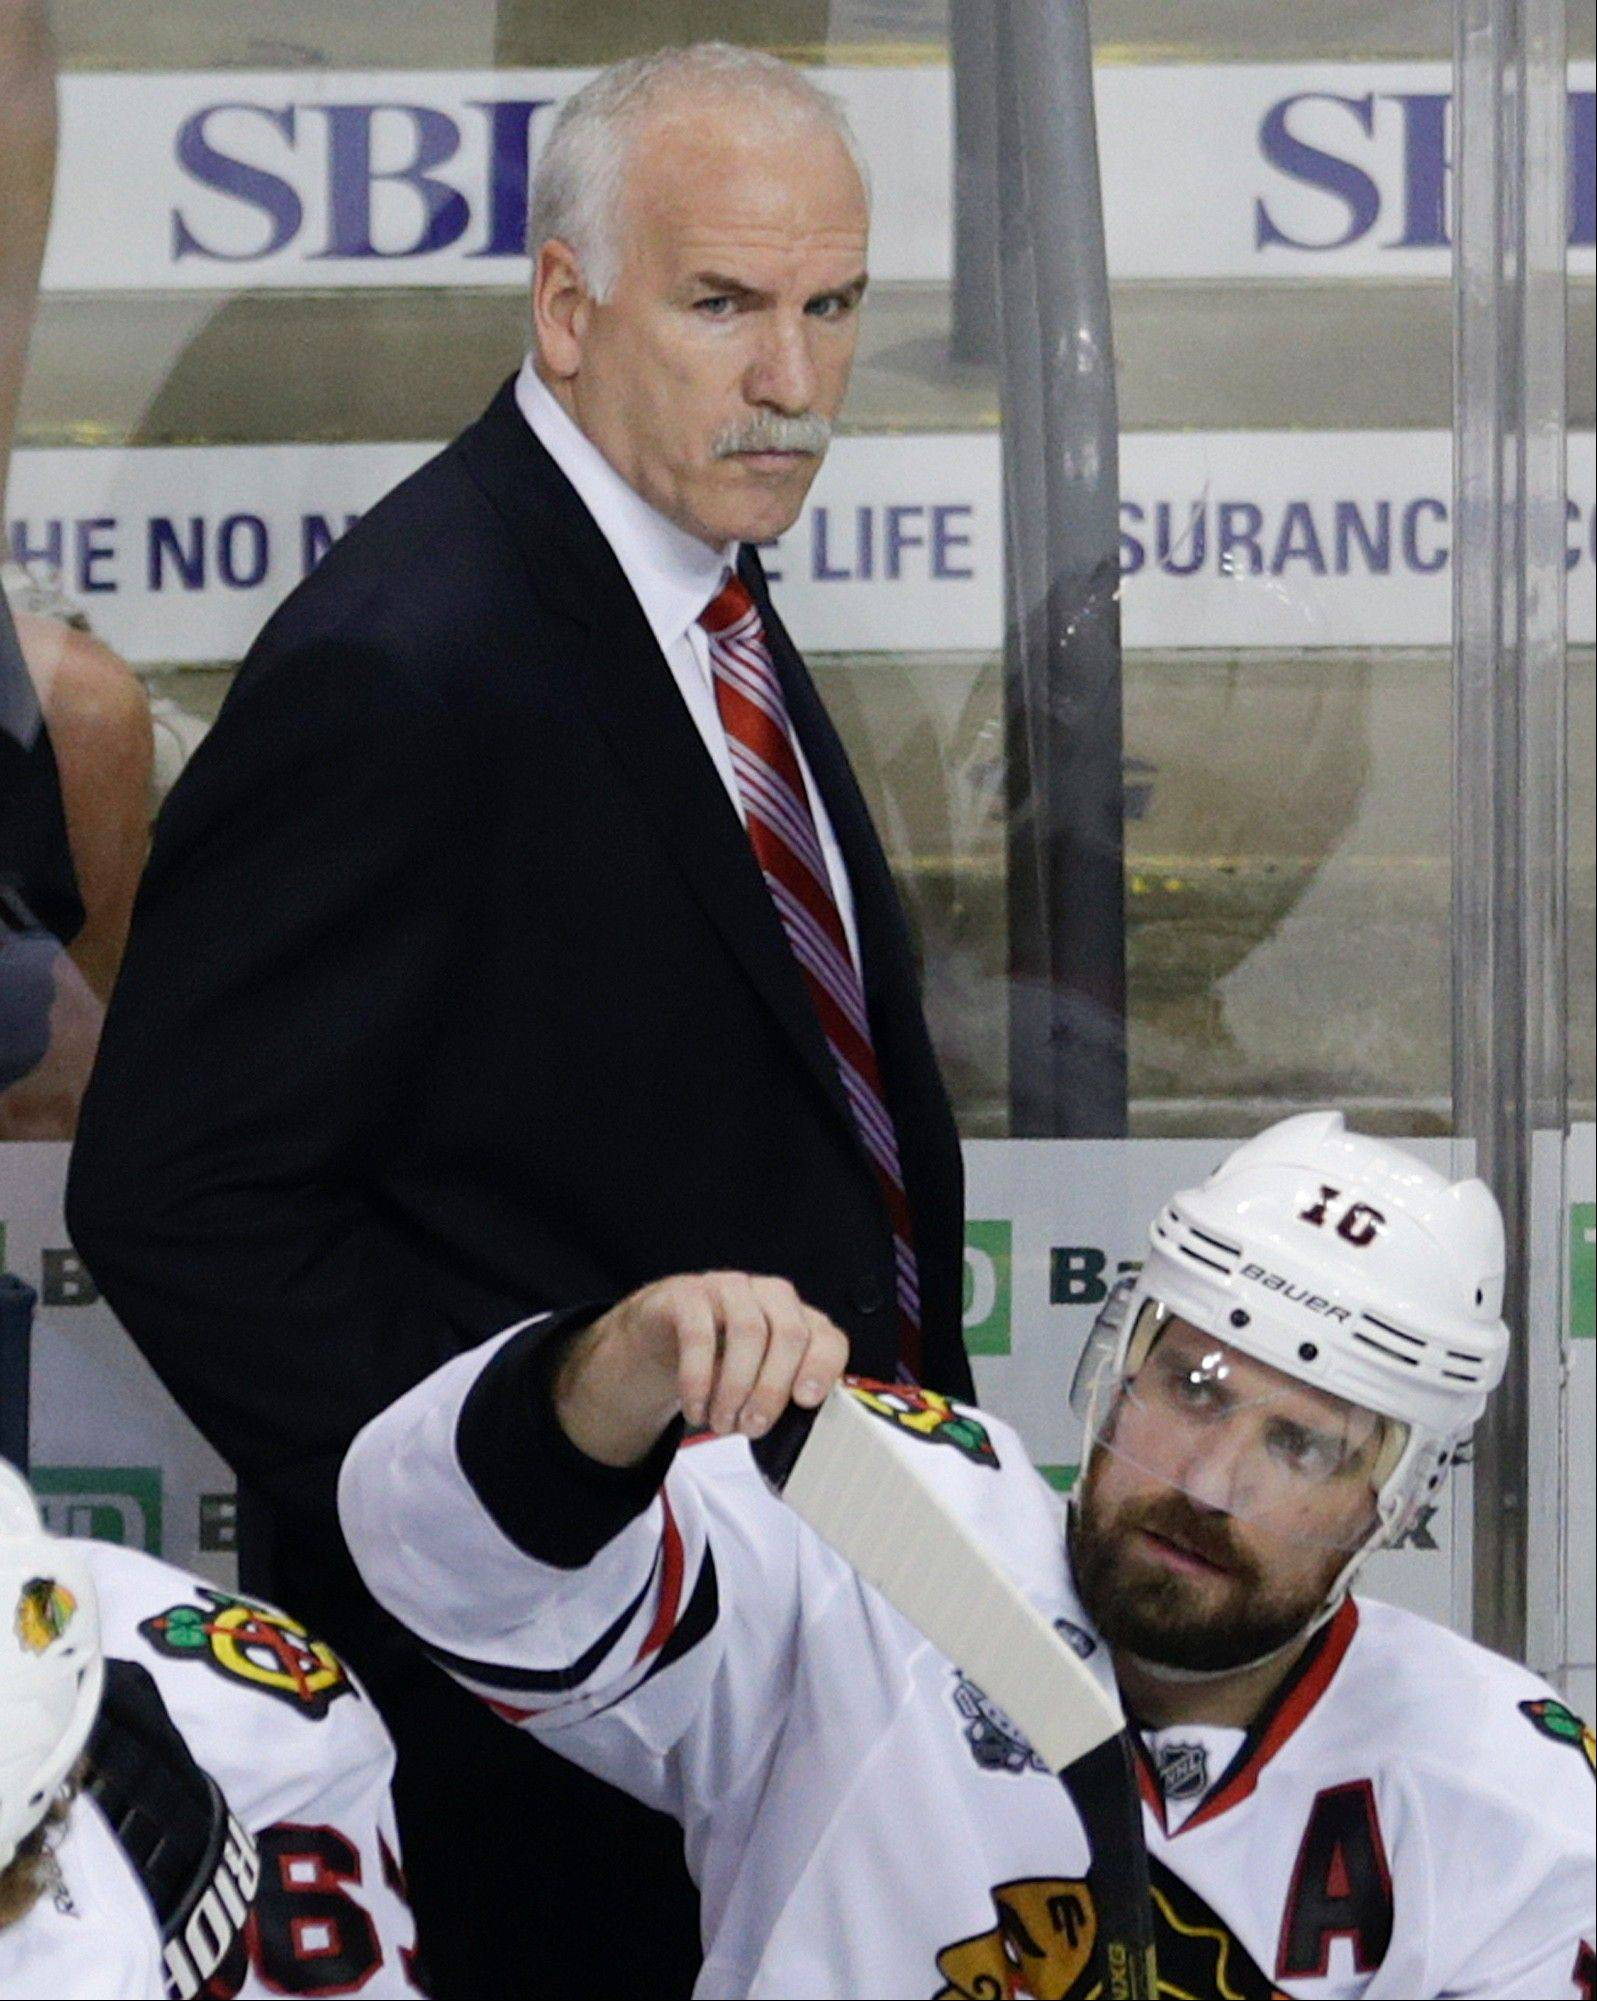 Chicago Blackhawks head coach Joel Quenneville walks behind the bench during the second period in Game 6 of the NHL hockey Stanley Cup Finals against the Boston Bruins, Monday, June 24, 2013, in Boston.